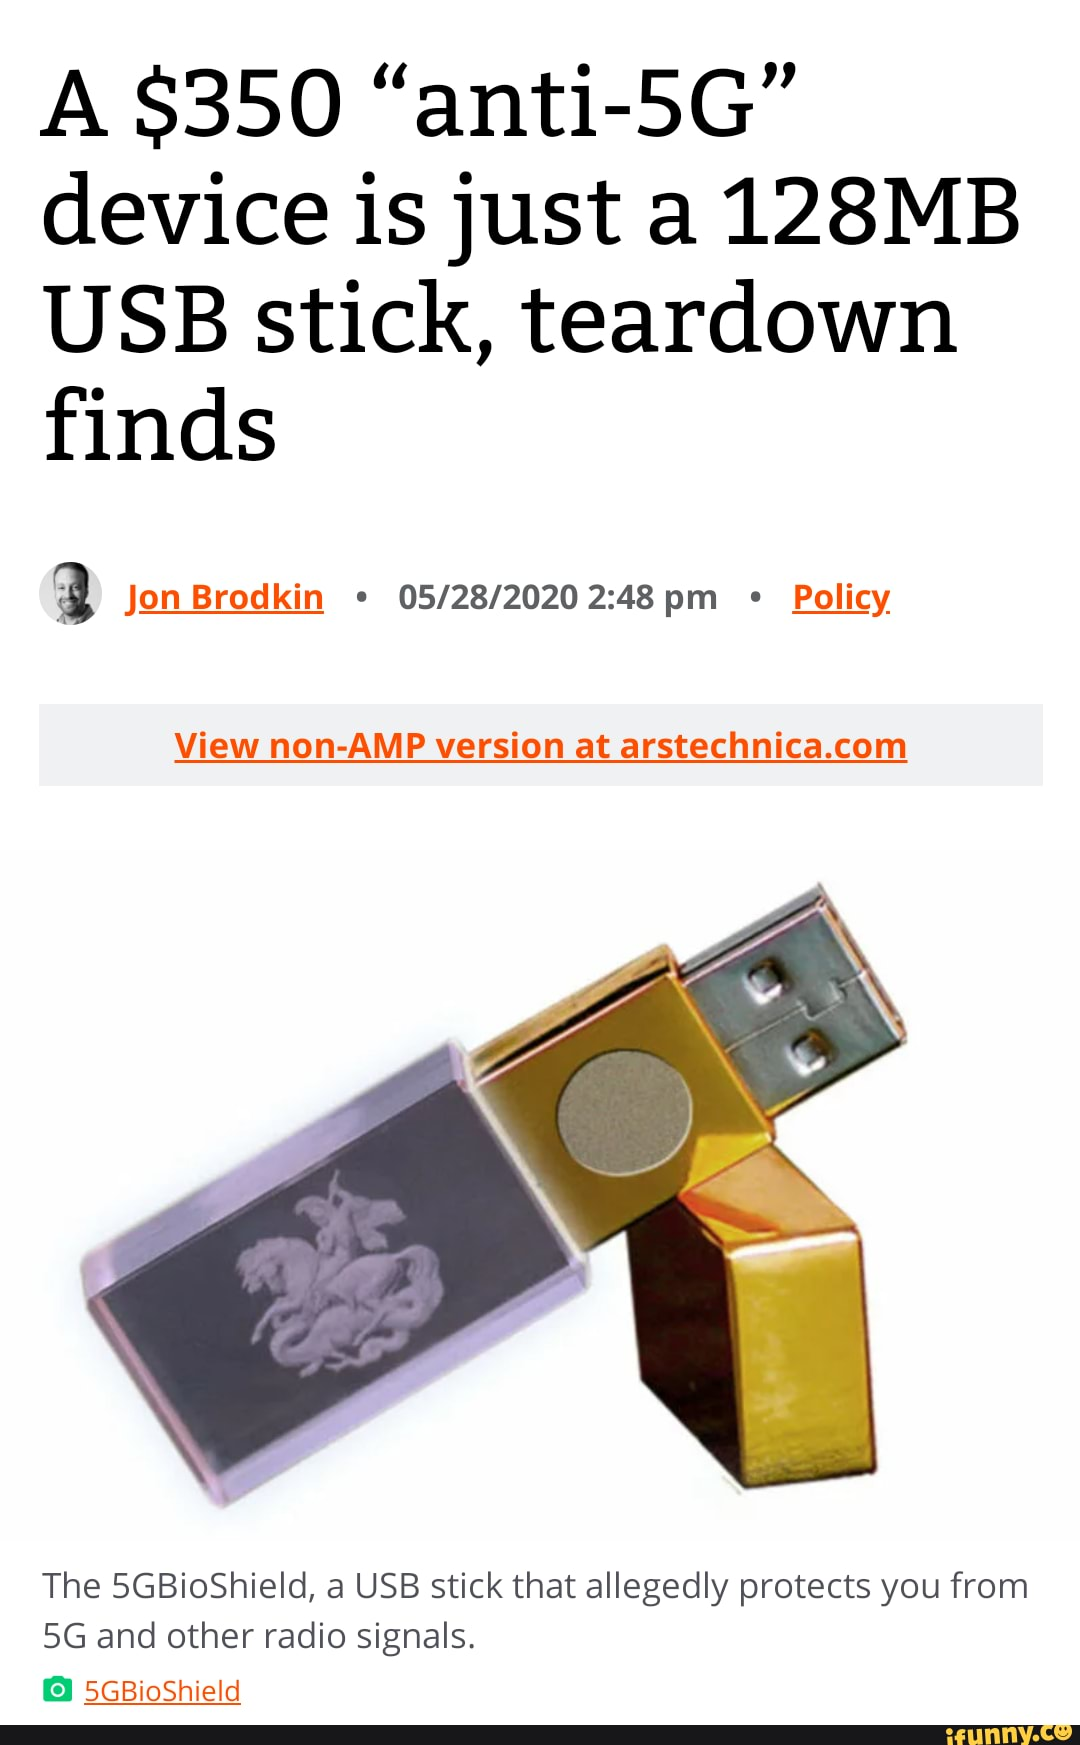 A 350 Anti 5g Device Is Just A 128mb Usb Stick Teardown Finds Jon Brodkin Pm Policy View Non Amp Version At The 5gbioshield A Usb Stick That Allegedly Protects You From And Other